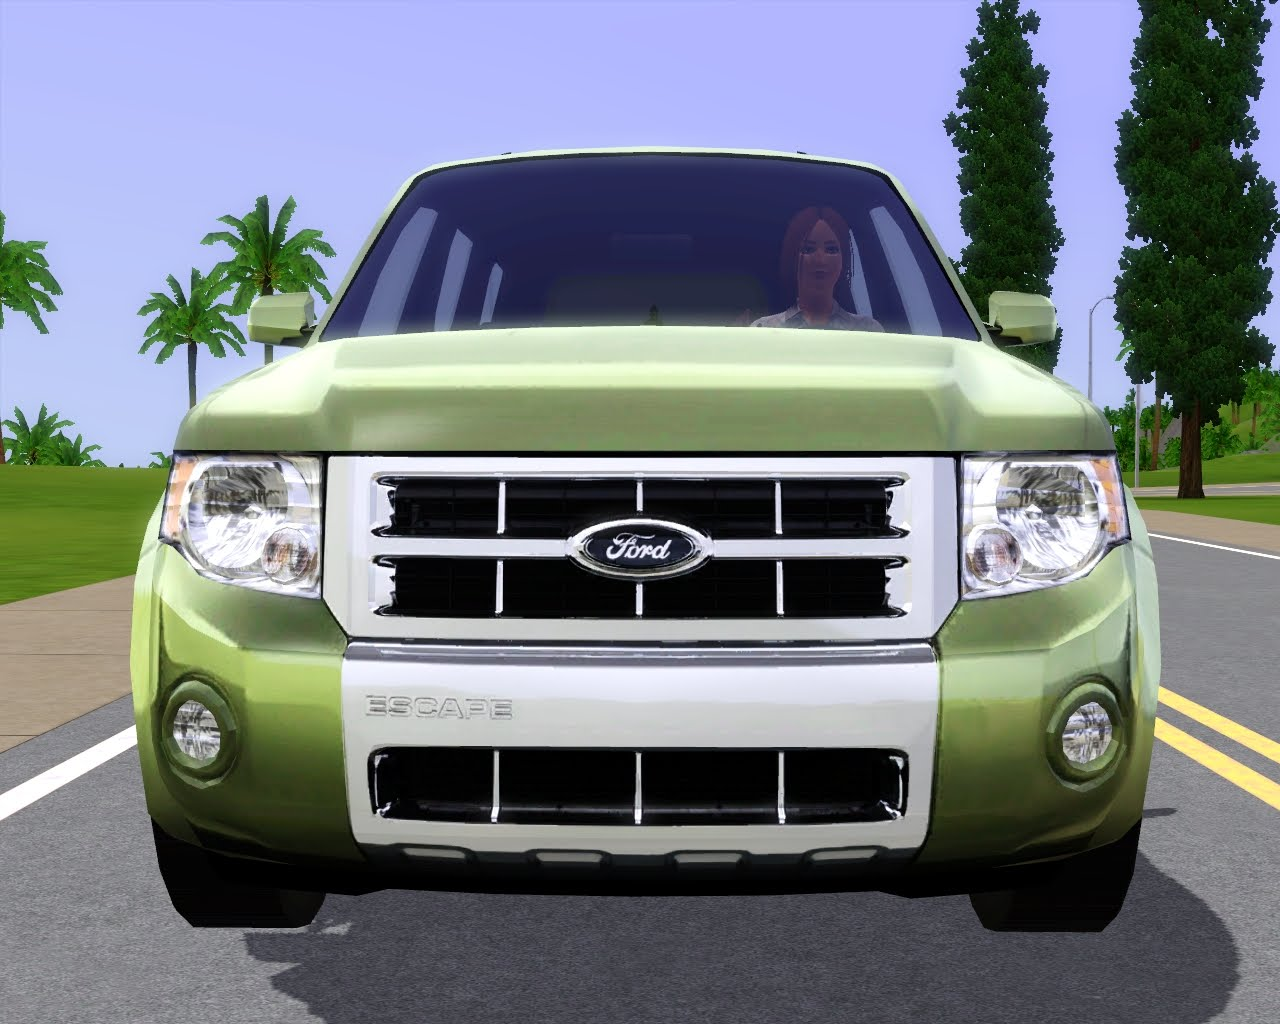 2010 ford escape hybrid by fresh prince download at fresh prince creations